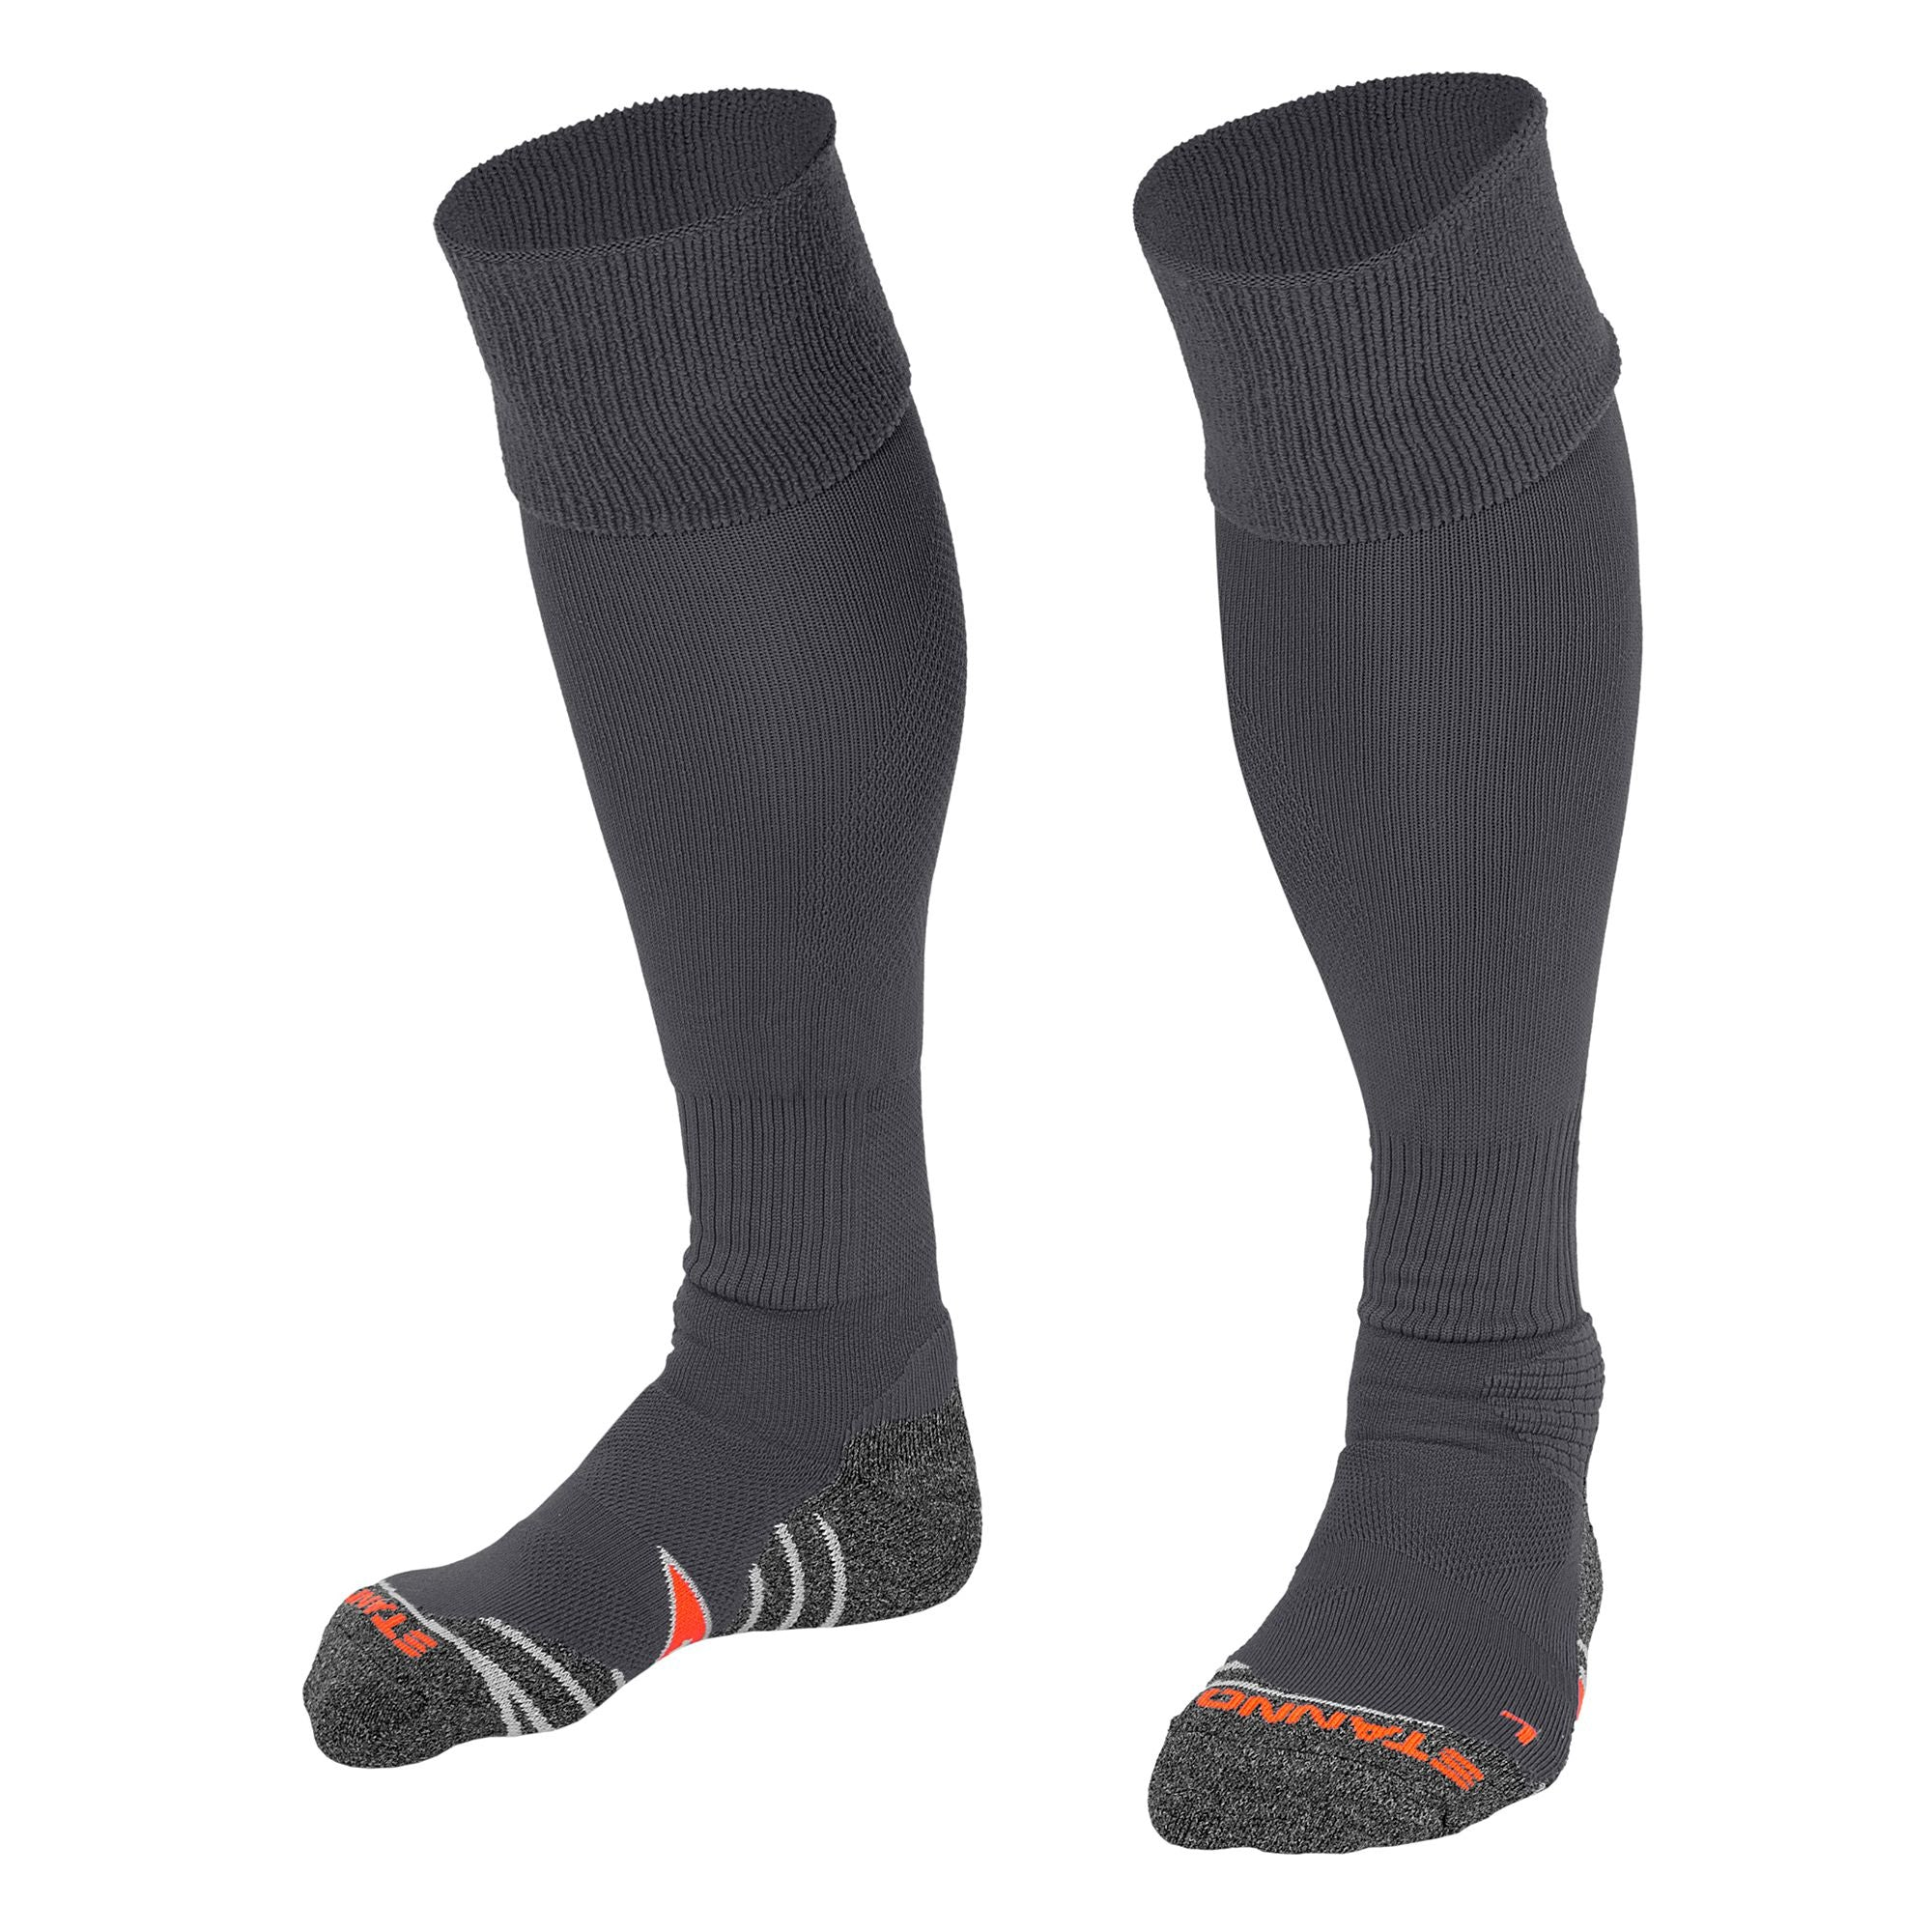 Stanno Uni Sock II football sock in anthracite with grey, white and orange sole